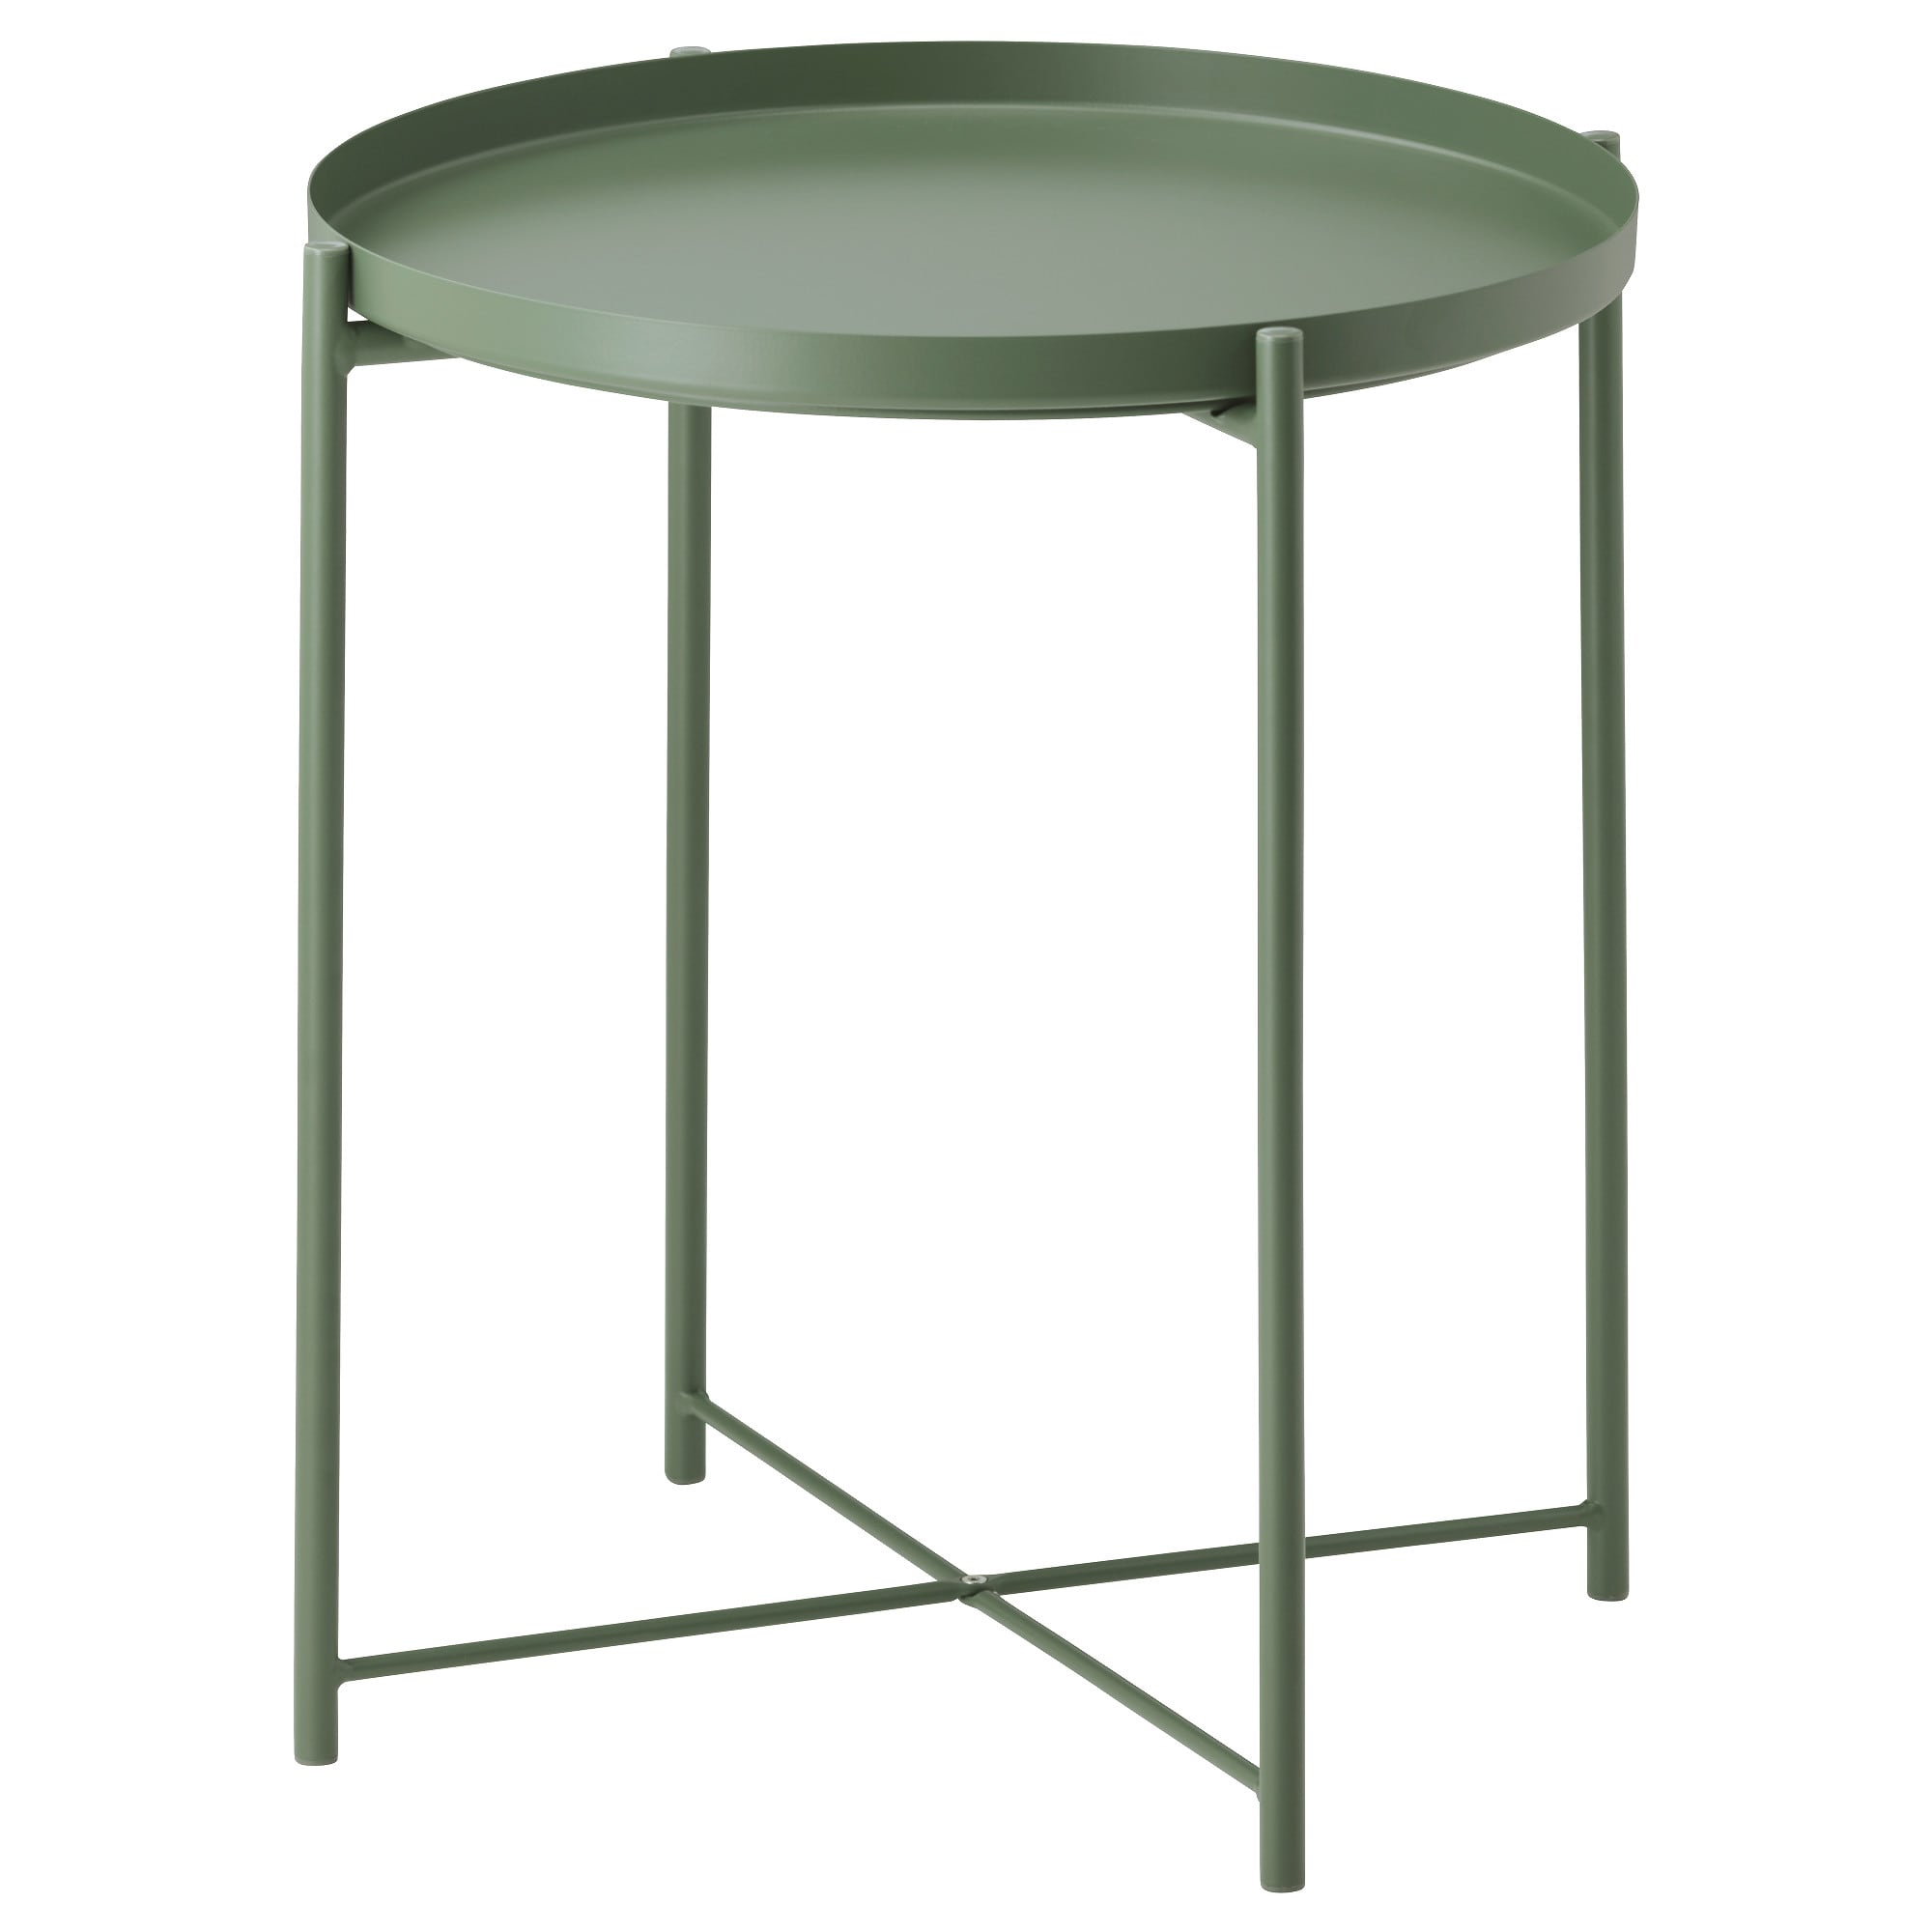 gladom tray table dark green ikea metal accent structube coffee round tile small black bedside outdoor dining with umbrella sets lamp lighted base queen frame modern side wooden